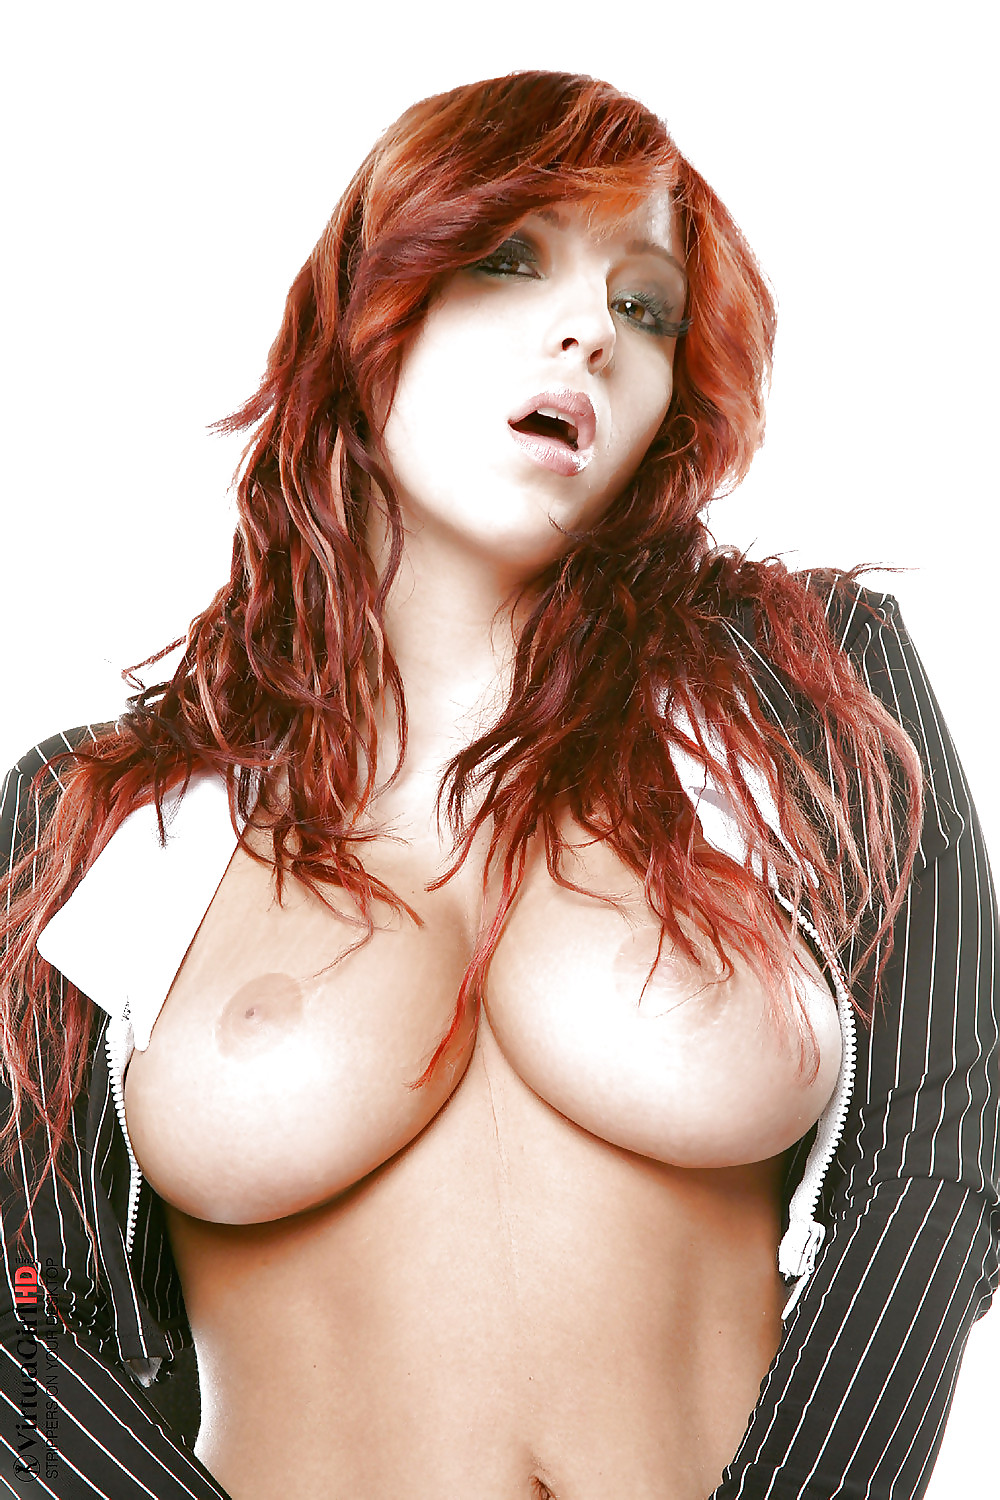 Marie mccray sexy redhead stripping and spreading